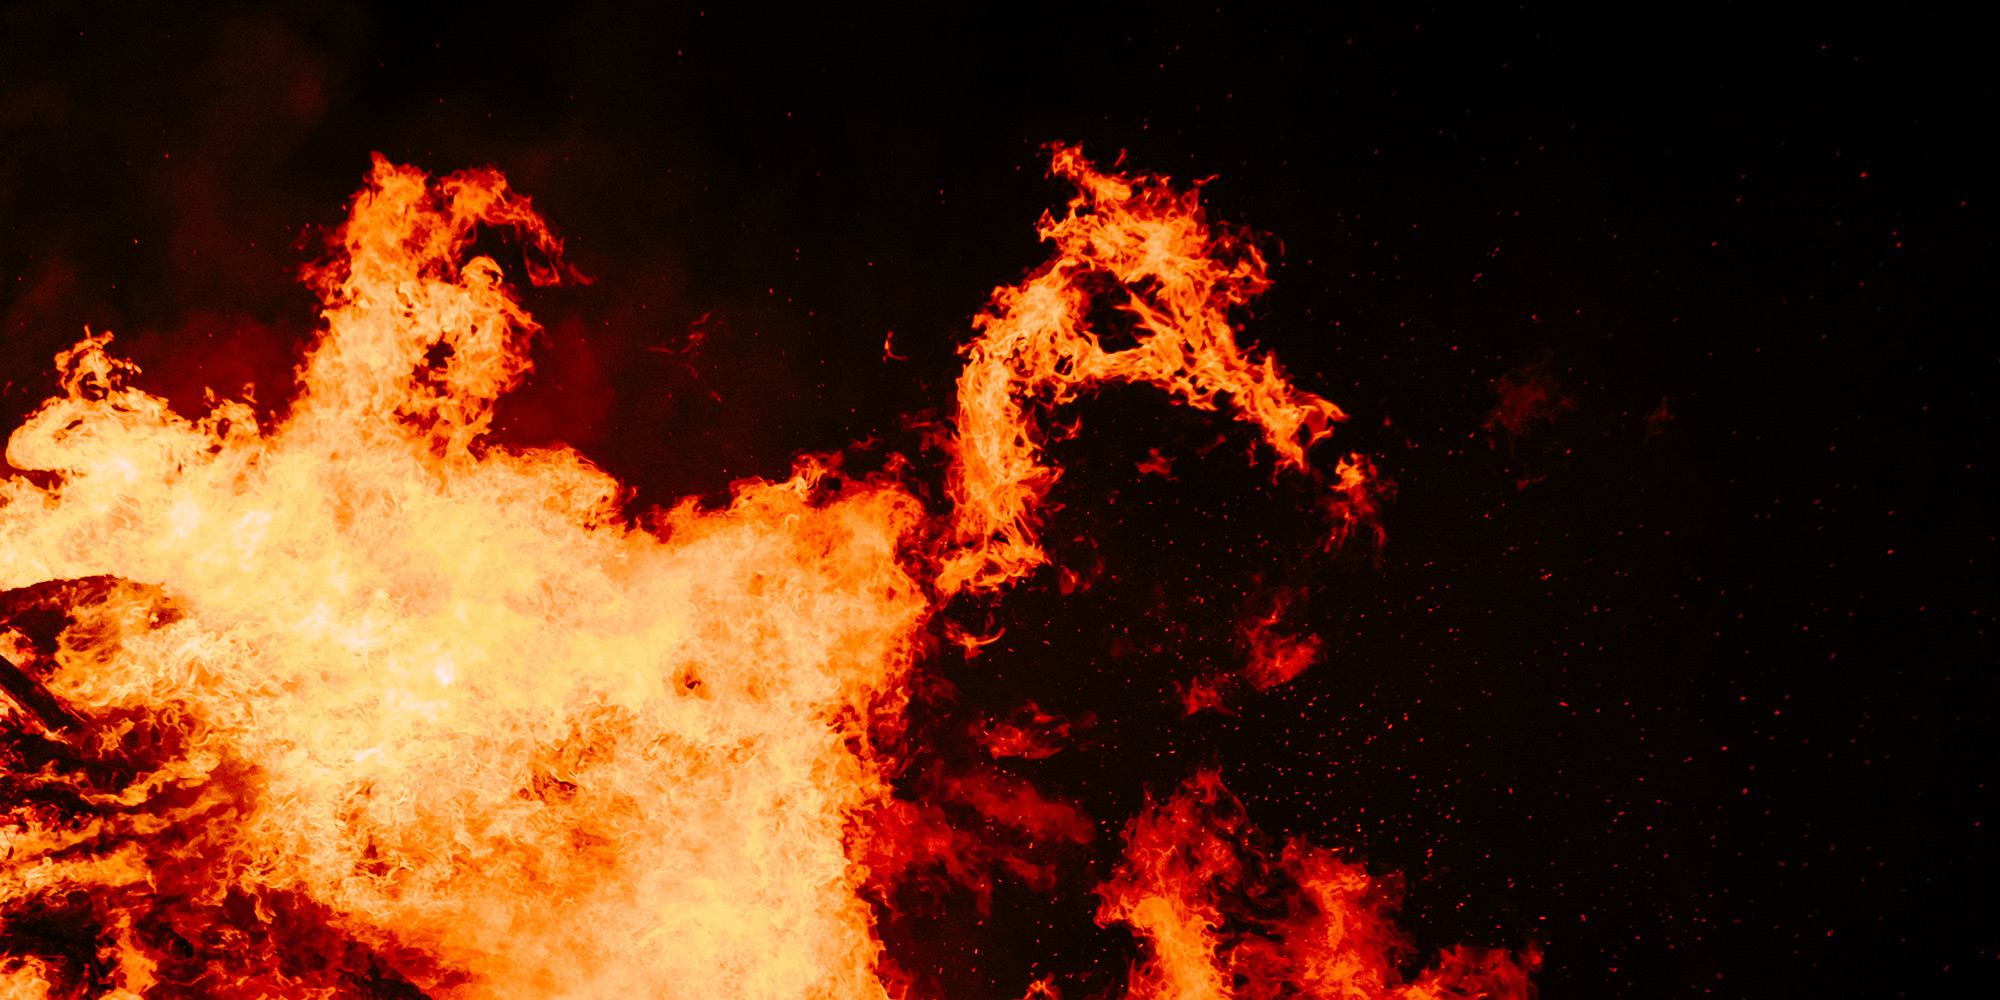 A photograph of a fire against a black background.